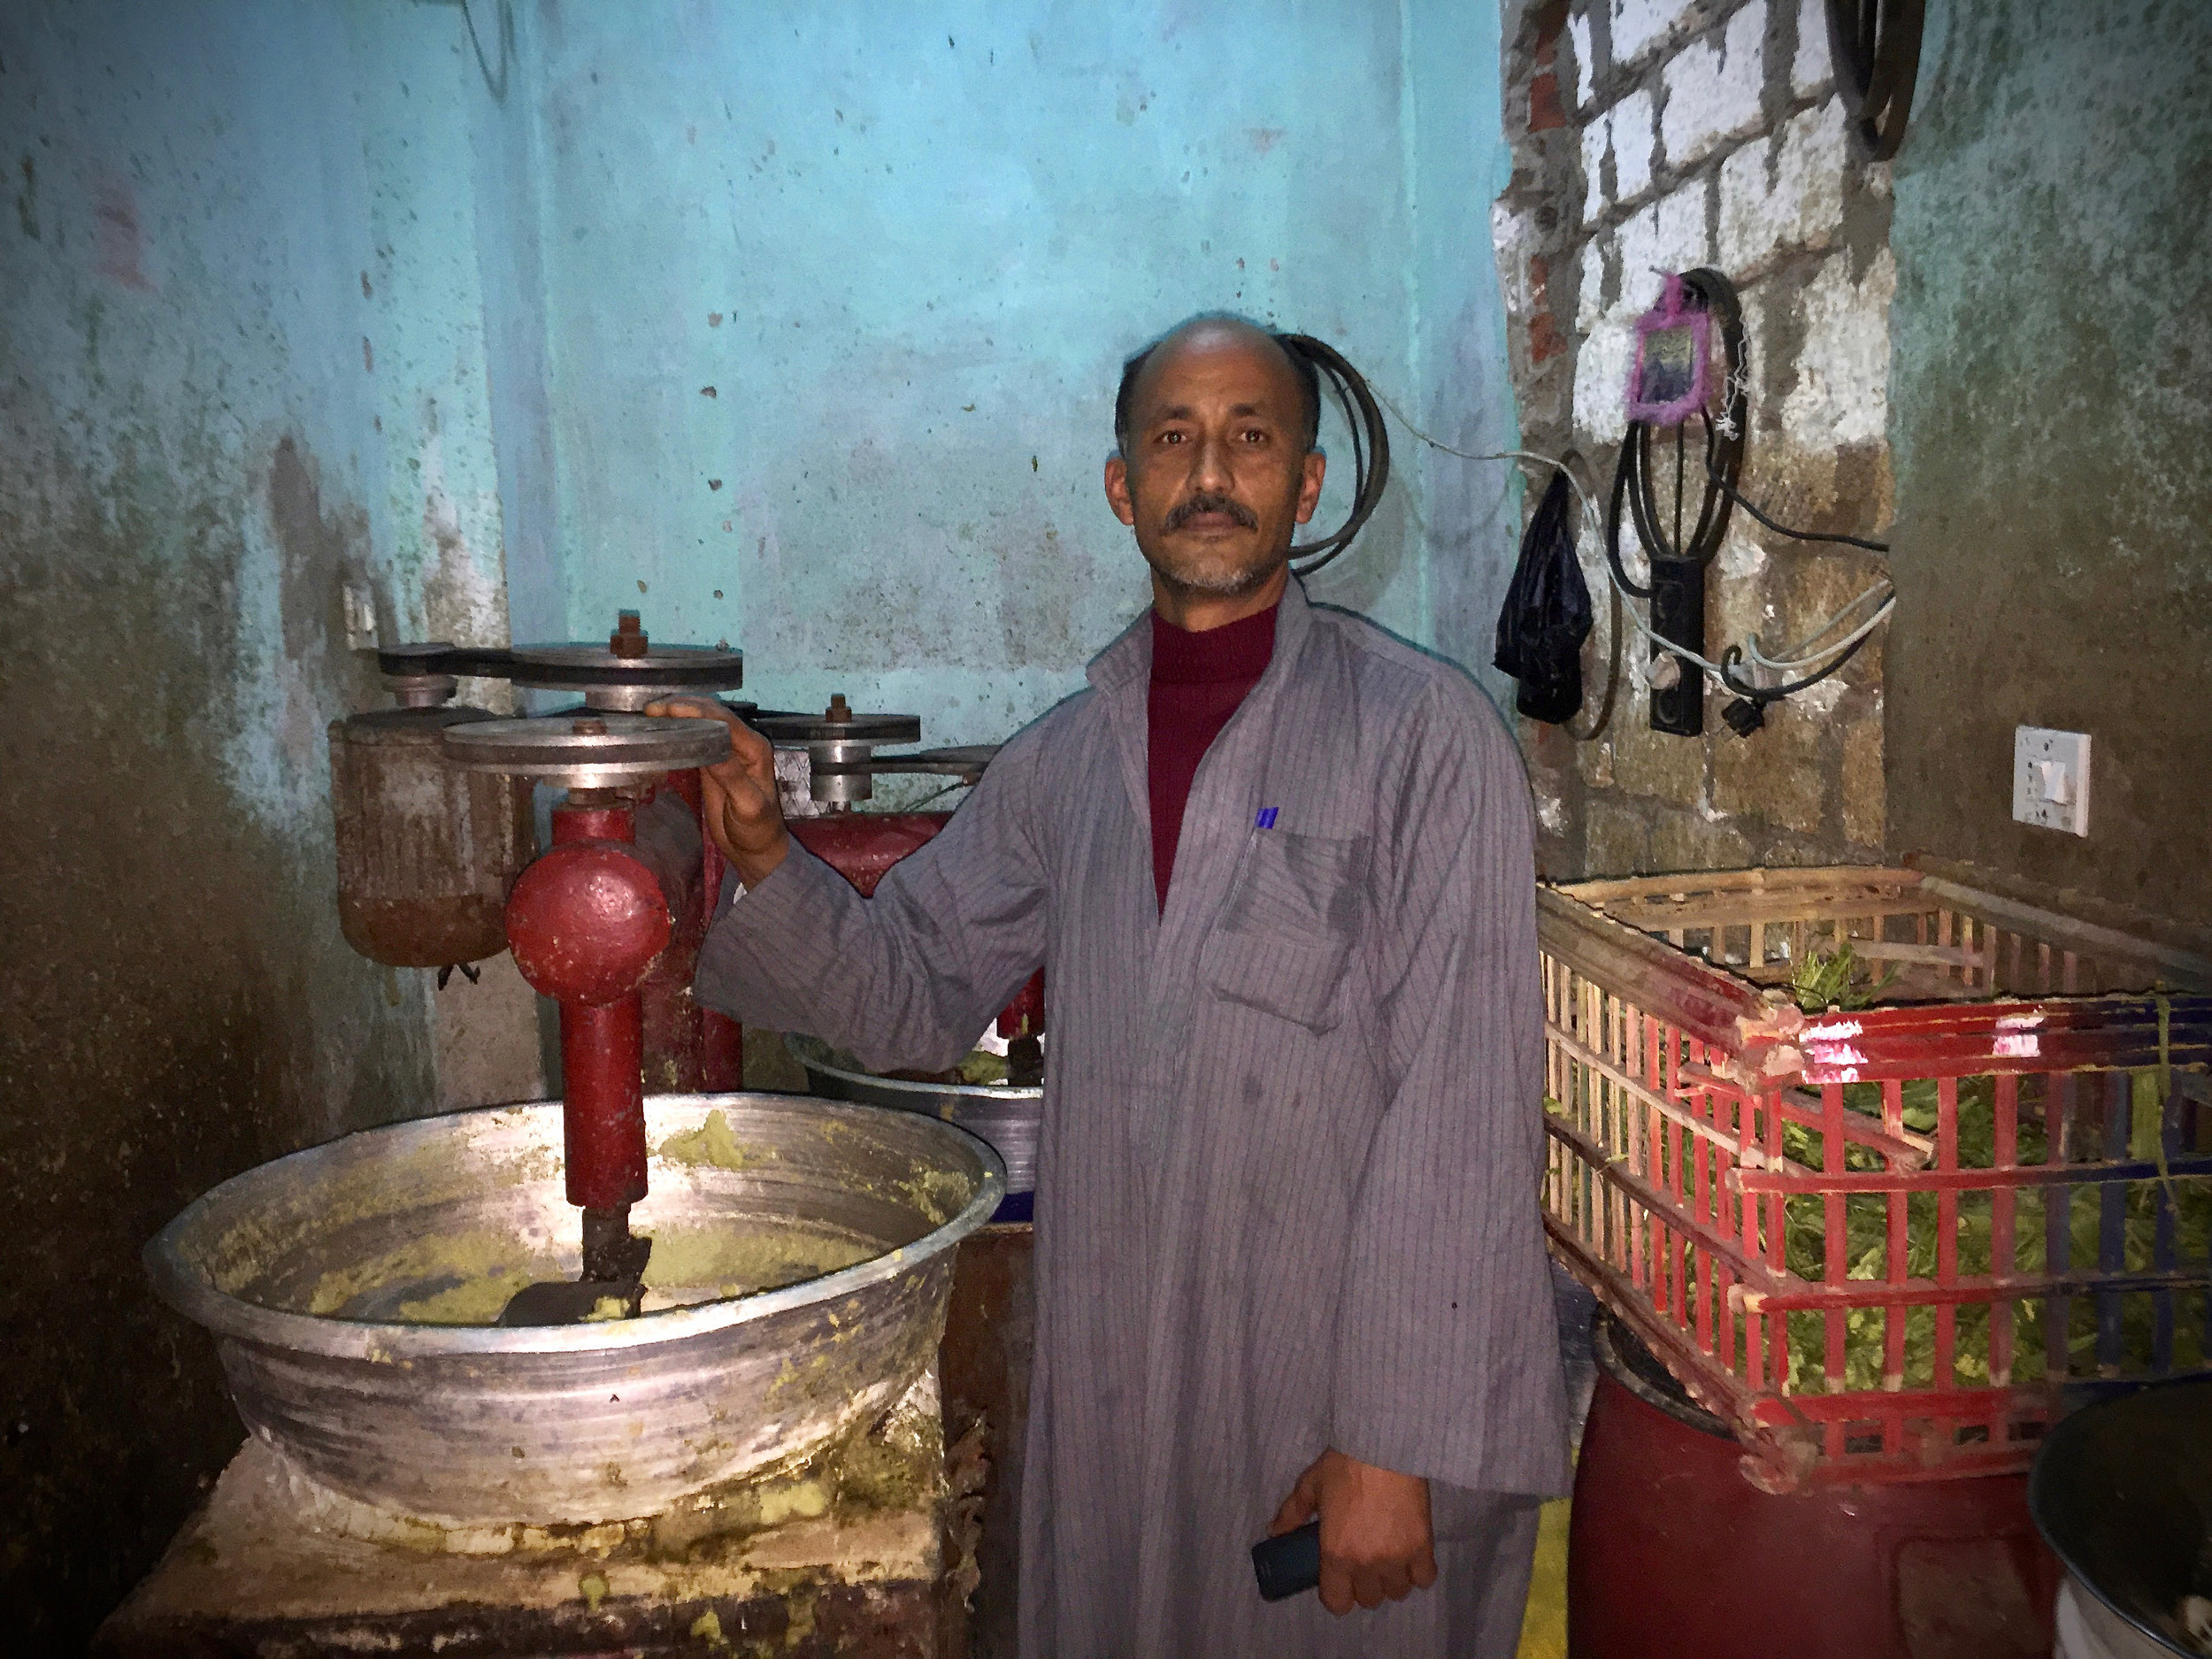 Mohammed used a second loan to buy an industrial mixer to expand his business.